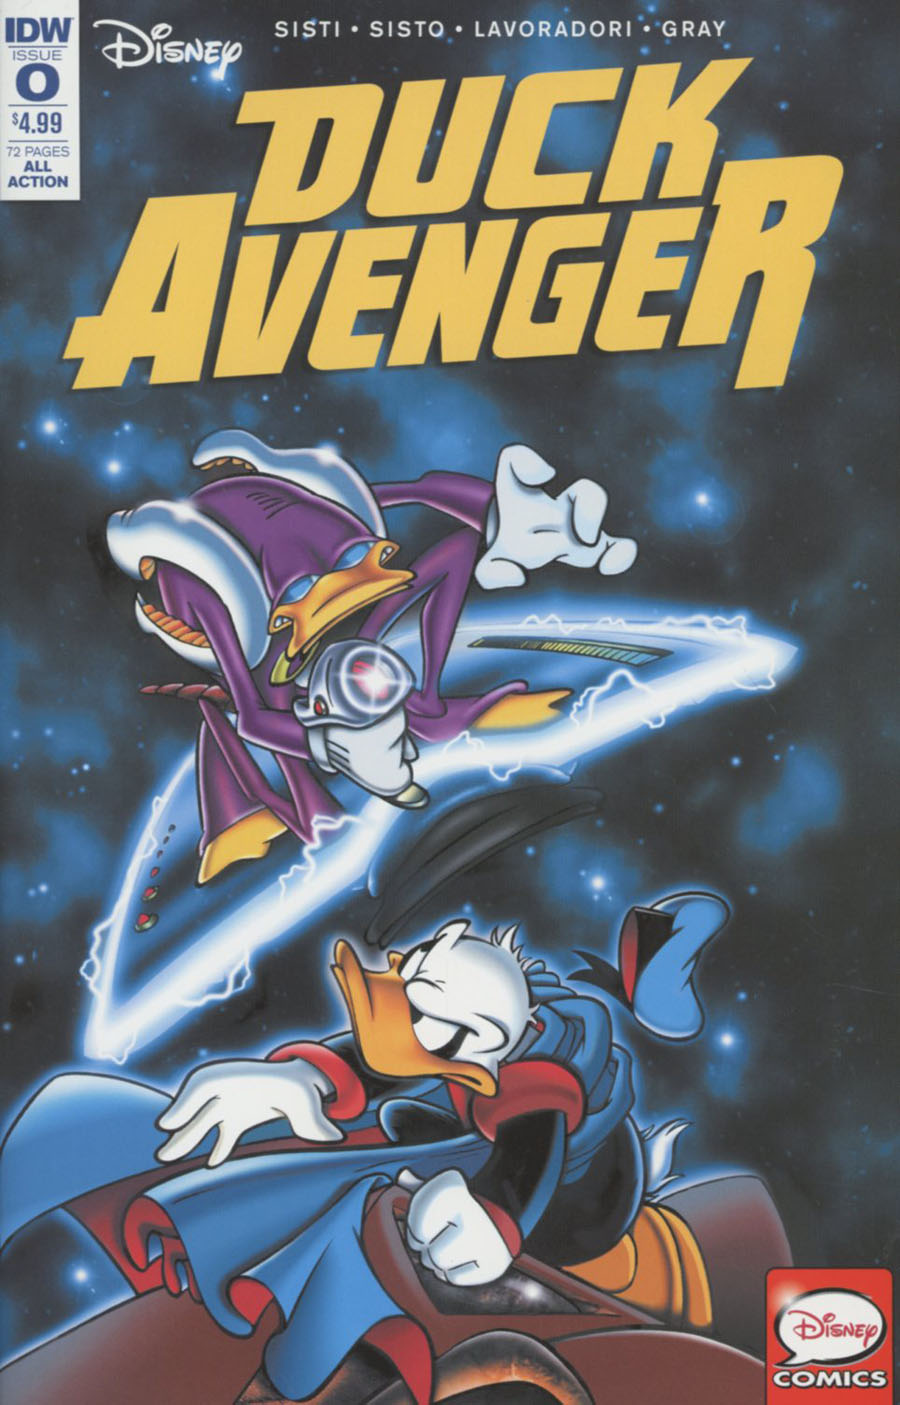 Duck Avenger #0 Cover A Regular Marco Ghiglione Cover